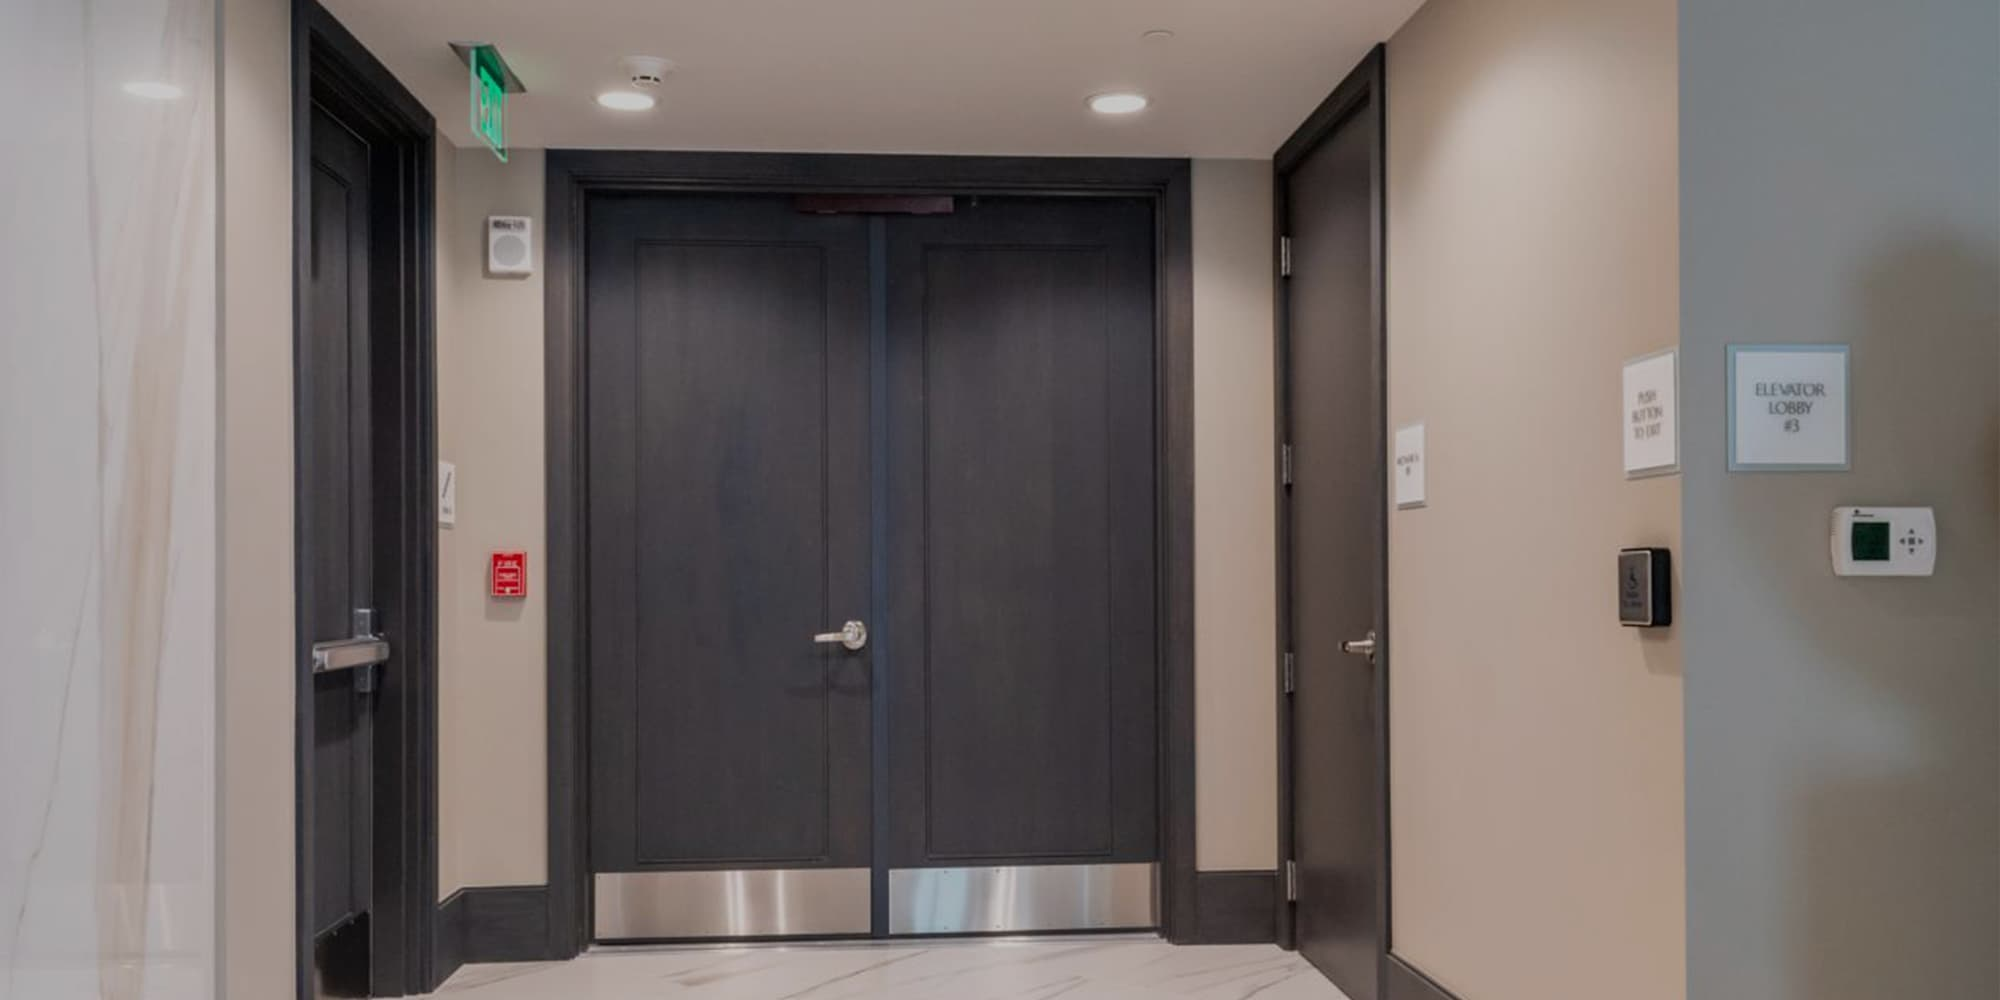 Updated Versions of WDMA's Architectural Wood Door Standards Now Available